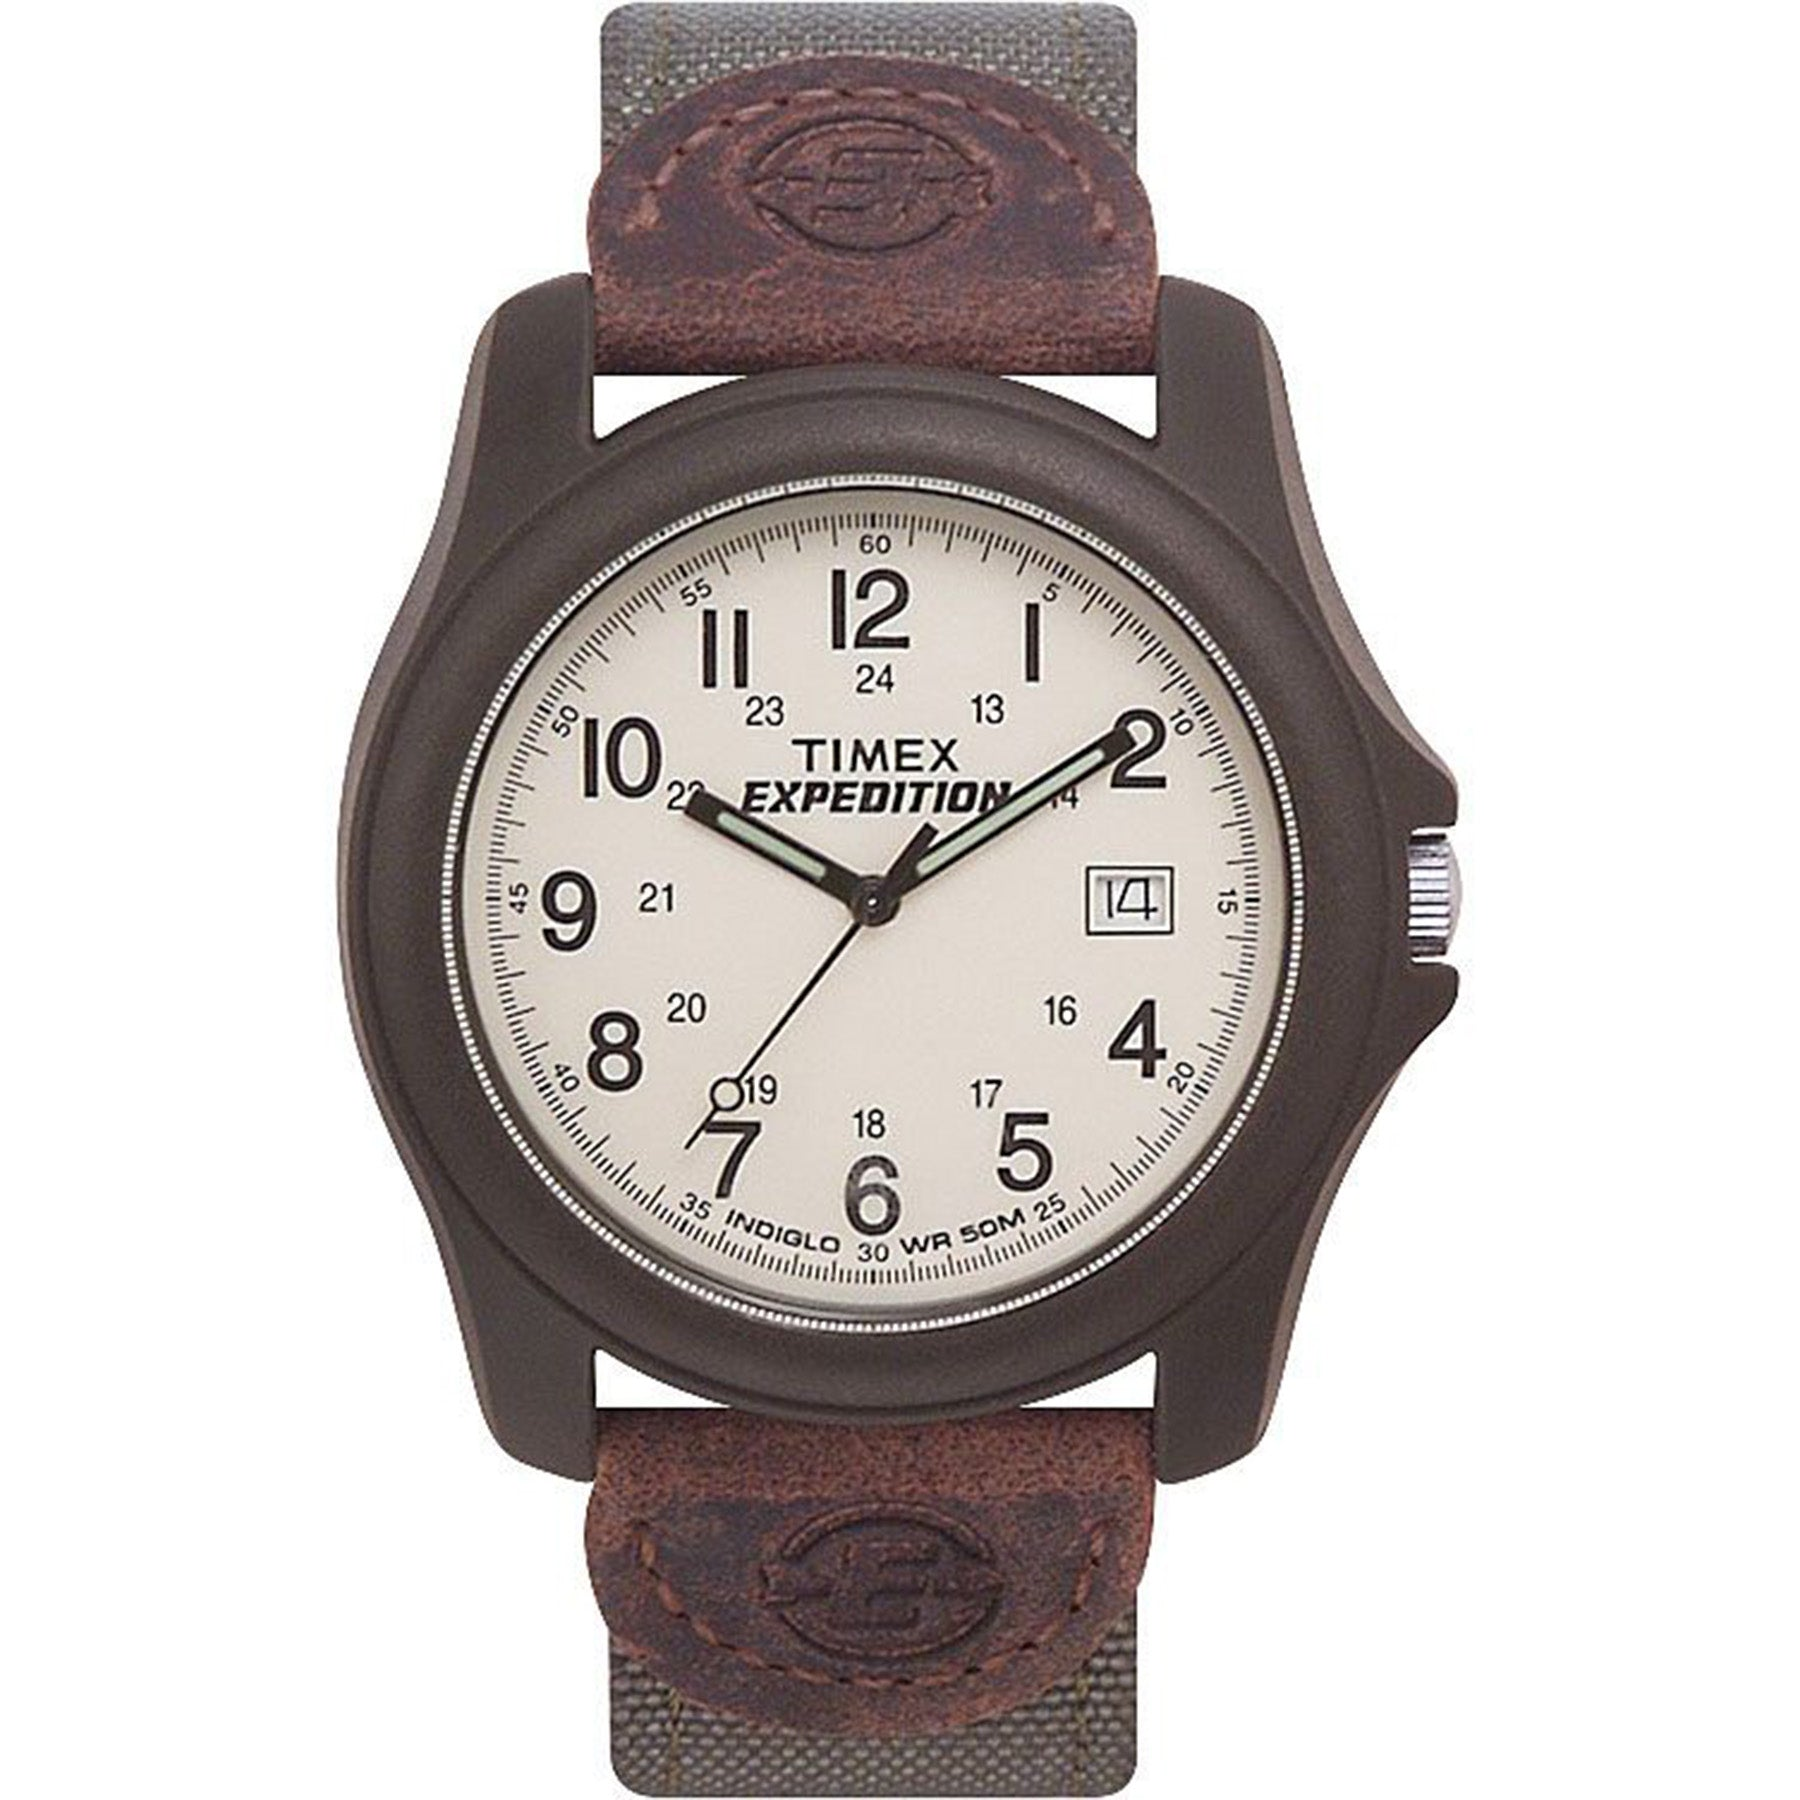 the timex camper watch has hour, minute, and second hands, and a window through which shows the date.